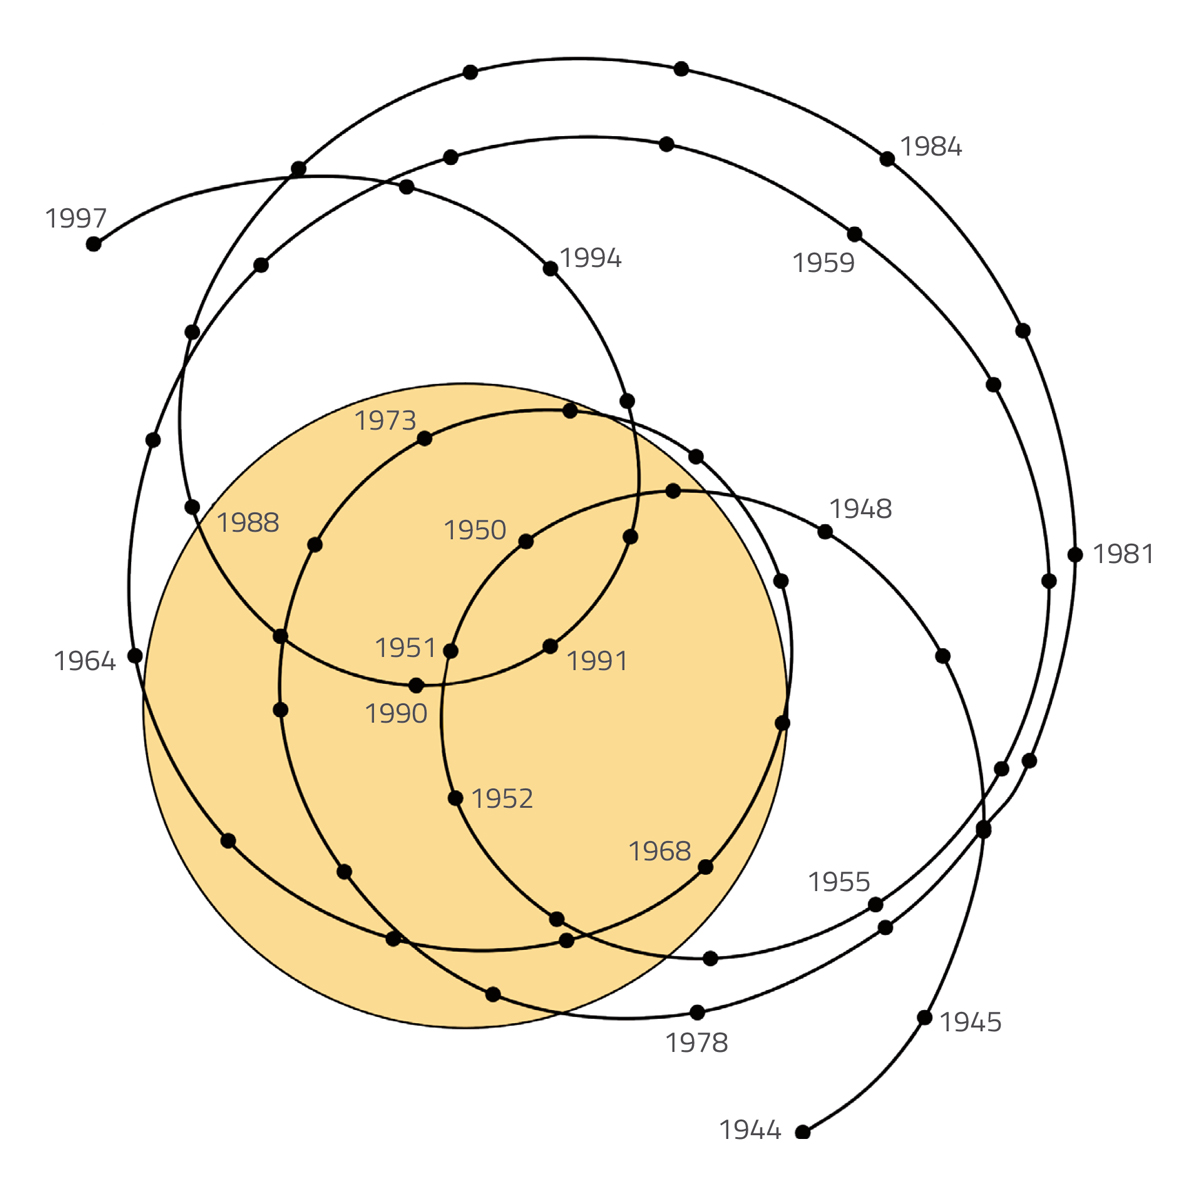 Figure 2: The black line shows the wobbling path of the Sun from 1944 to 1997 as the planets of the Solar System pull on it. The yellow circle indicates the Sun's size